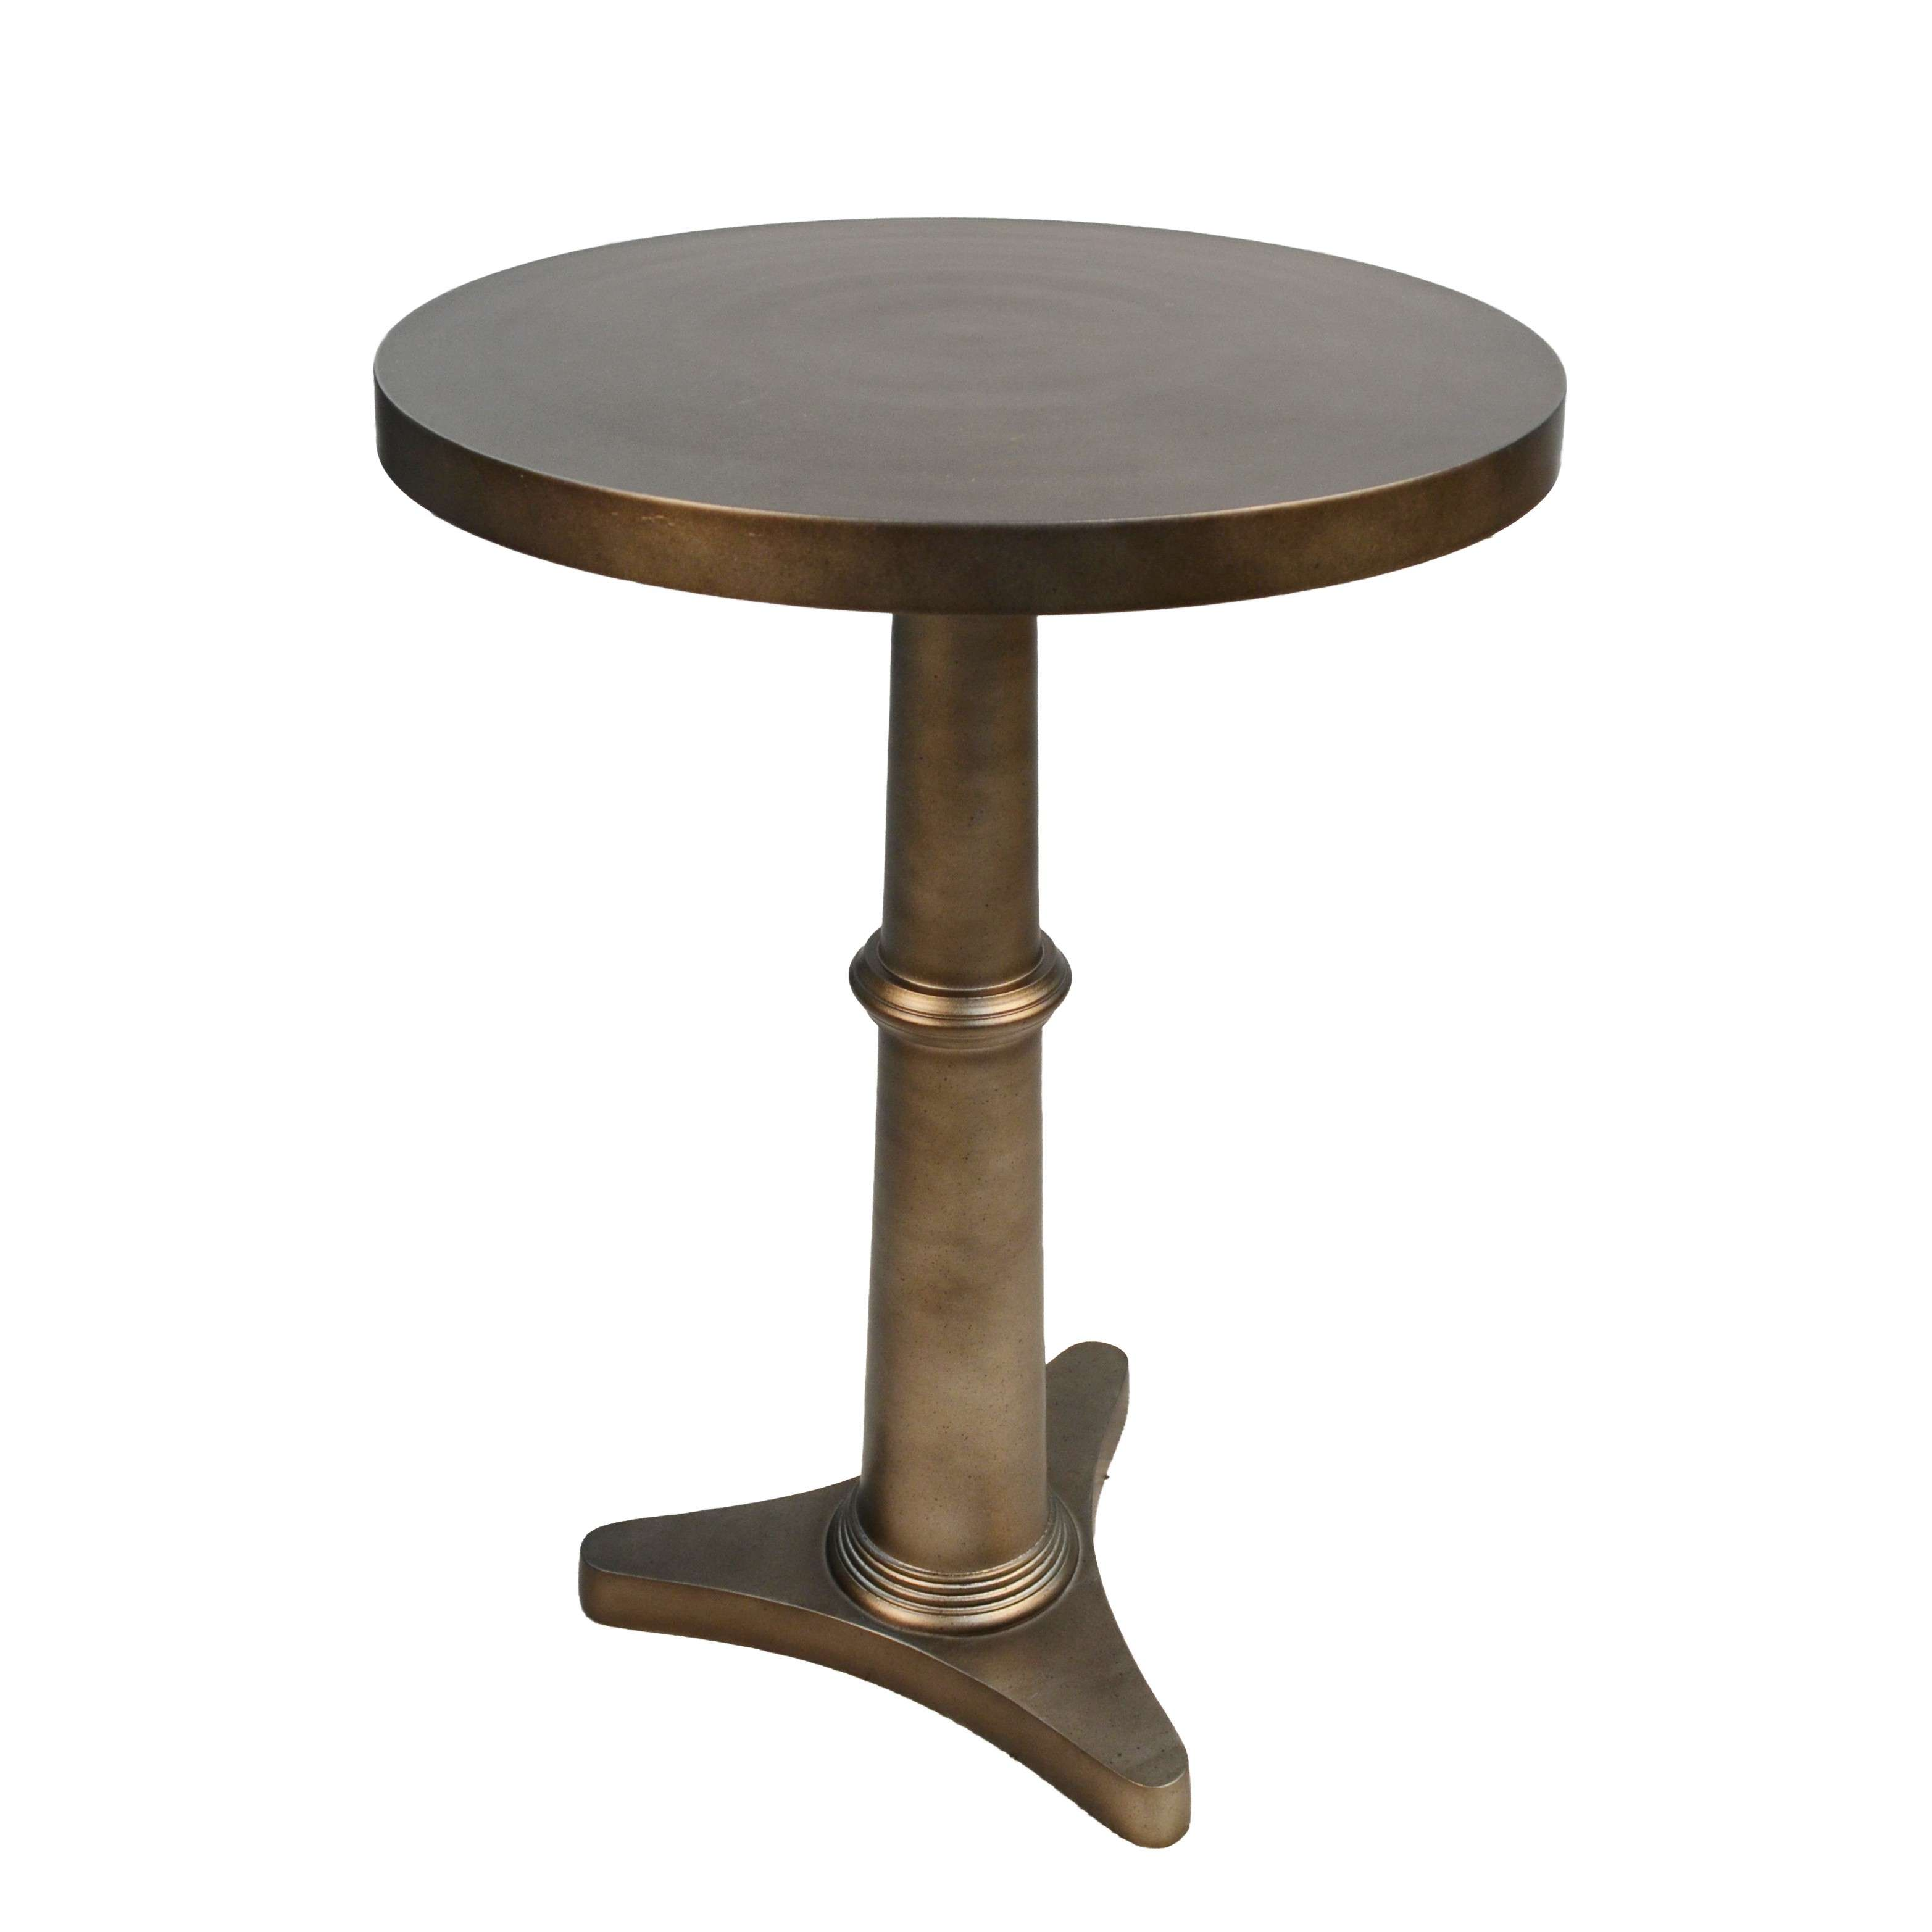 carolina chair table chatham antique bronze round accent metal tables perched bird formal living room furniture modern marble top coffee high tops bar hooker end concrete console